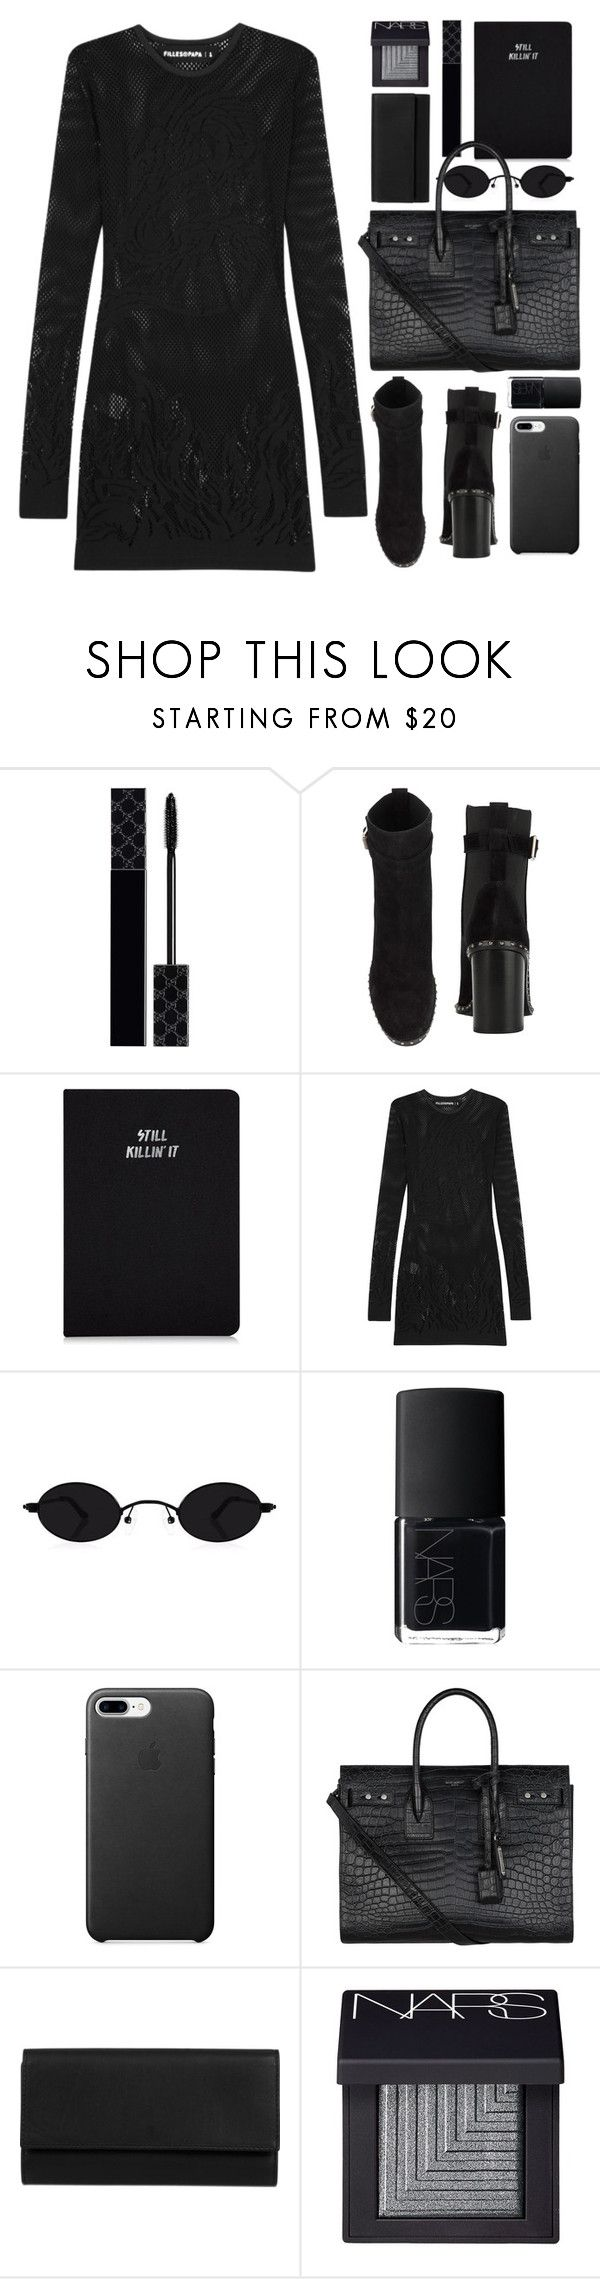 """""""blackest black"""" by foundlostme ❤ liked on Polyvore featuring Gucci, rag & bone, Filles à papa, NARS Cosmetics, Yves Saint Laurent, Gérard Darel and allblack"""